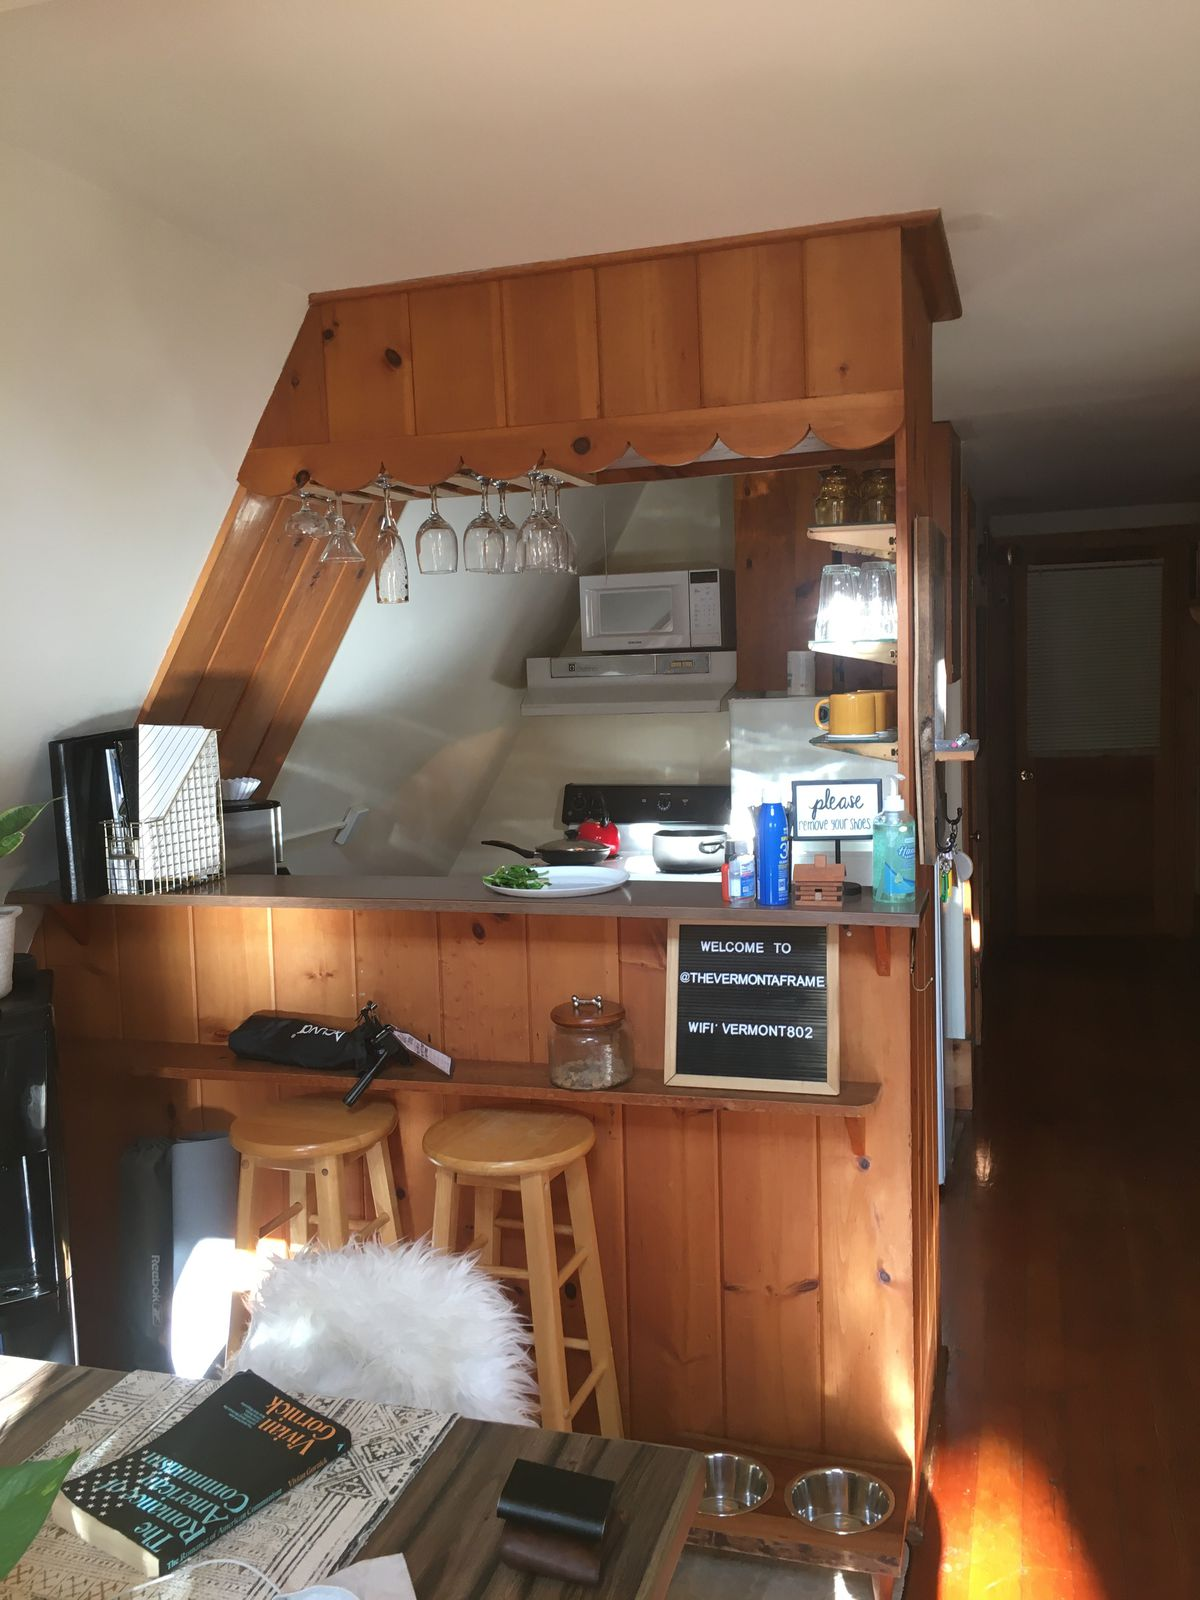 The cabin's kitchen, shown with a table and two stools in the foreground and small kitchen appliances in the background.